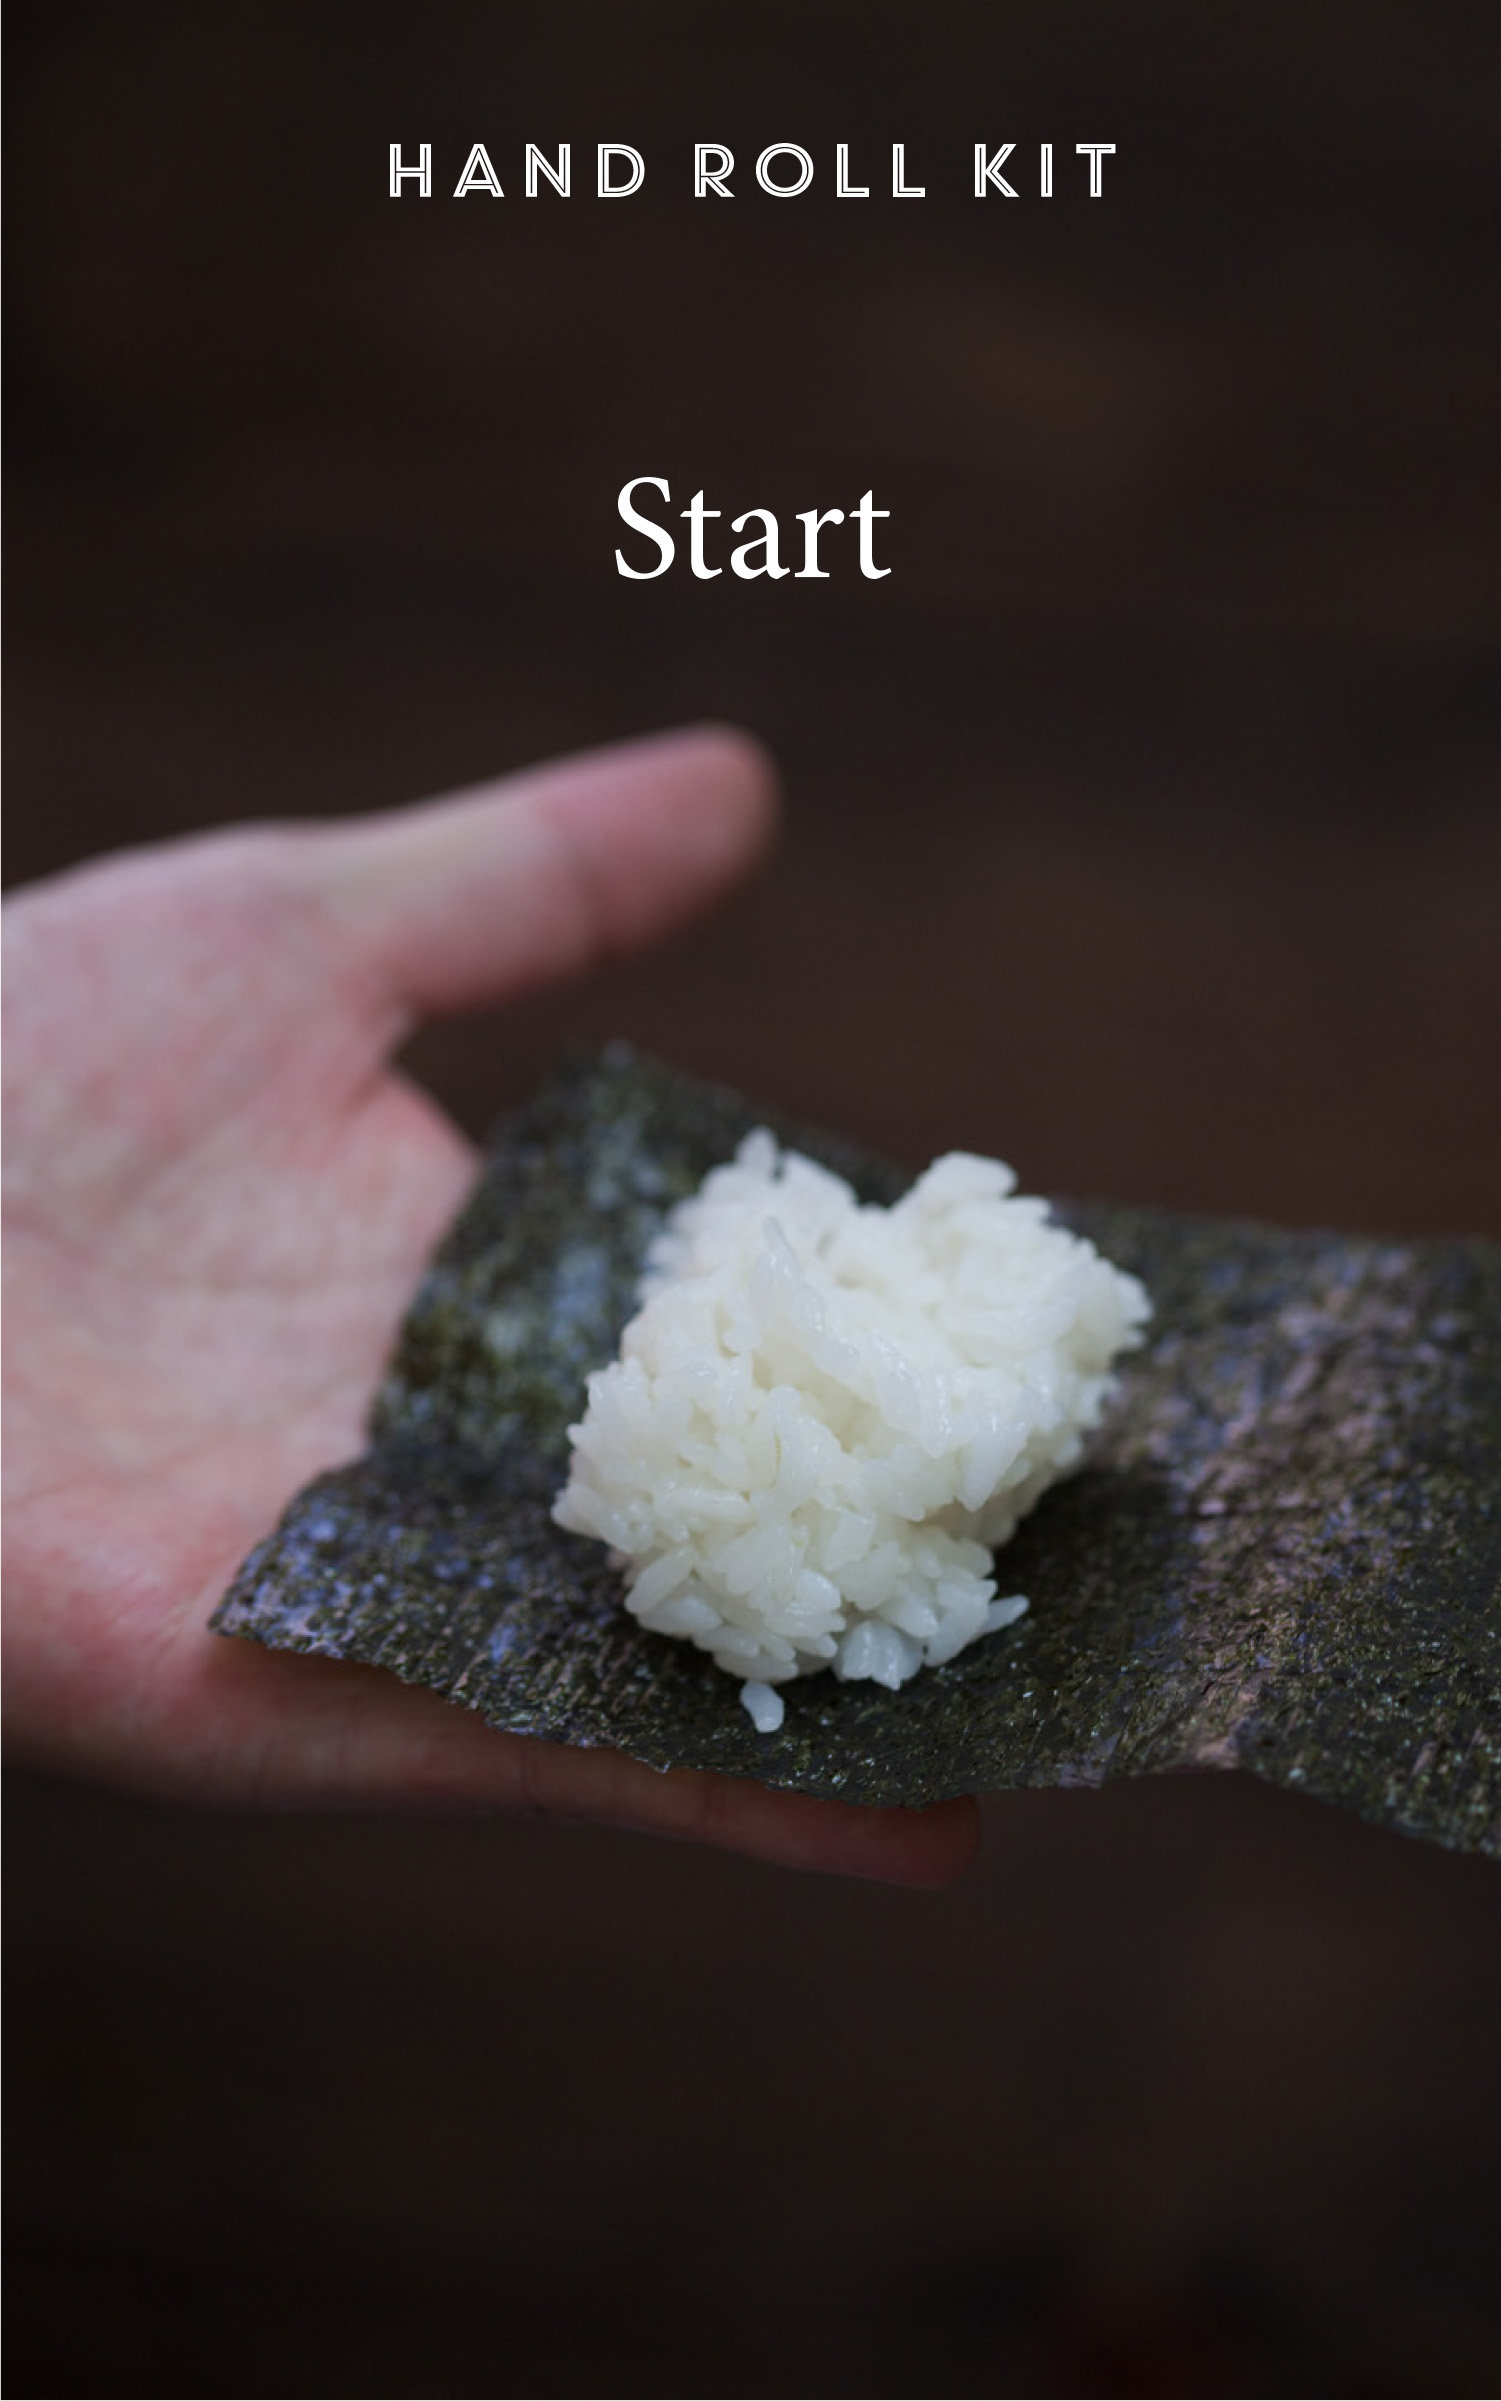 Photo of hand holding nori with rice on top